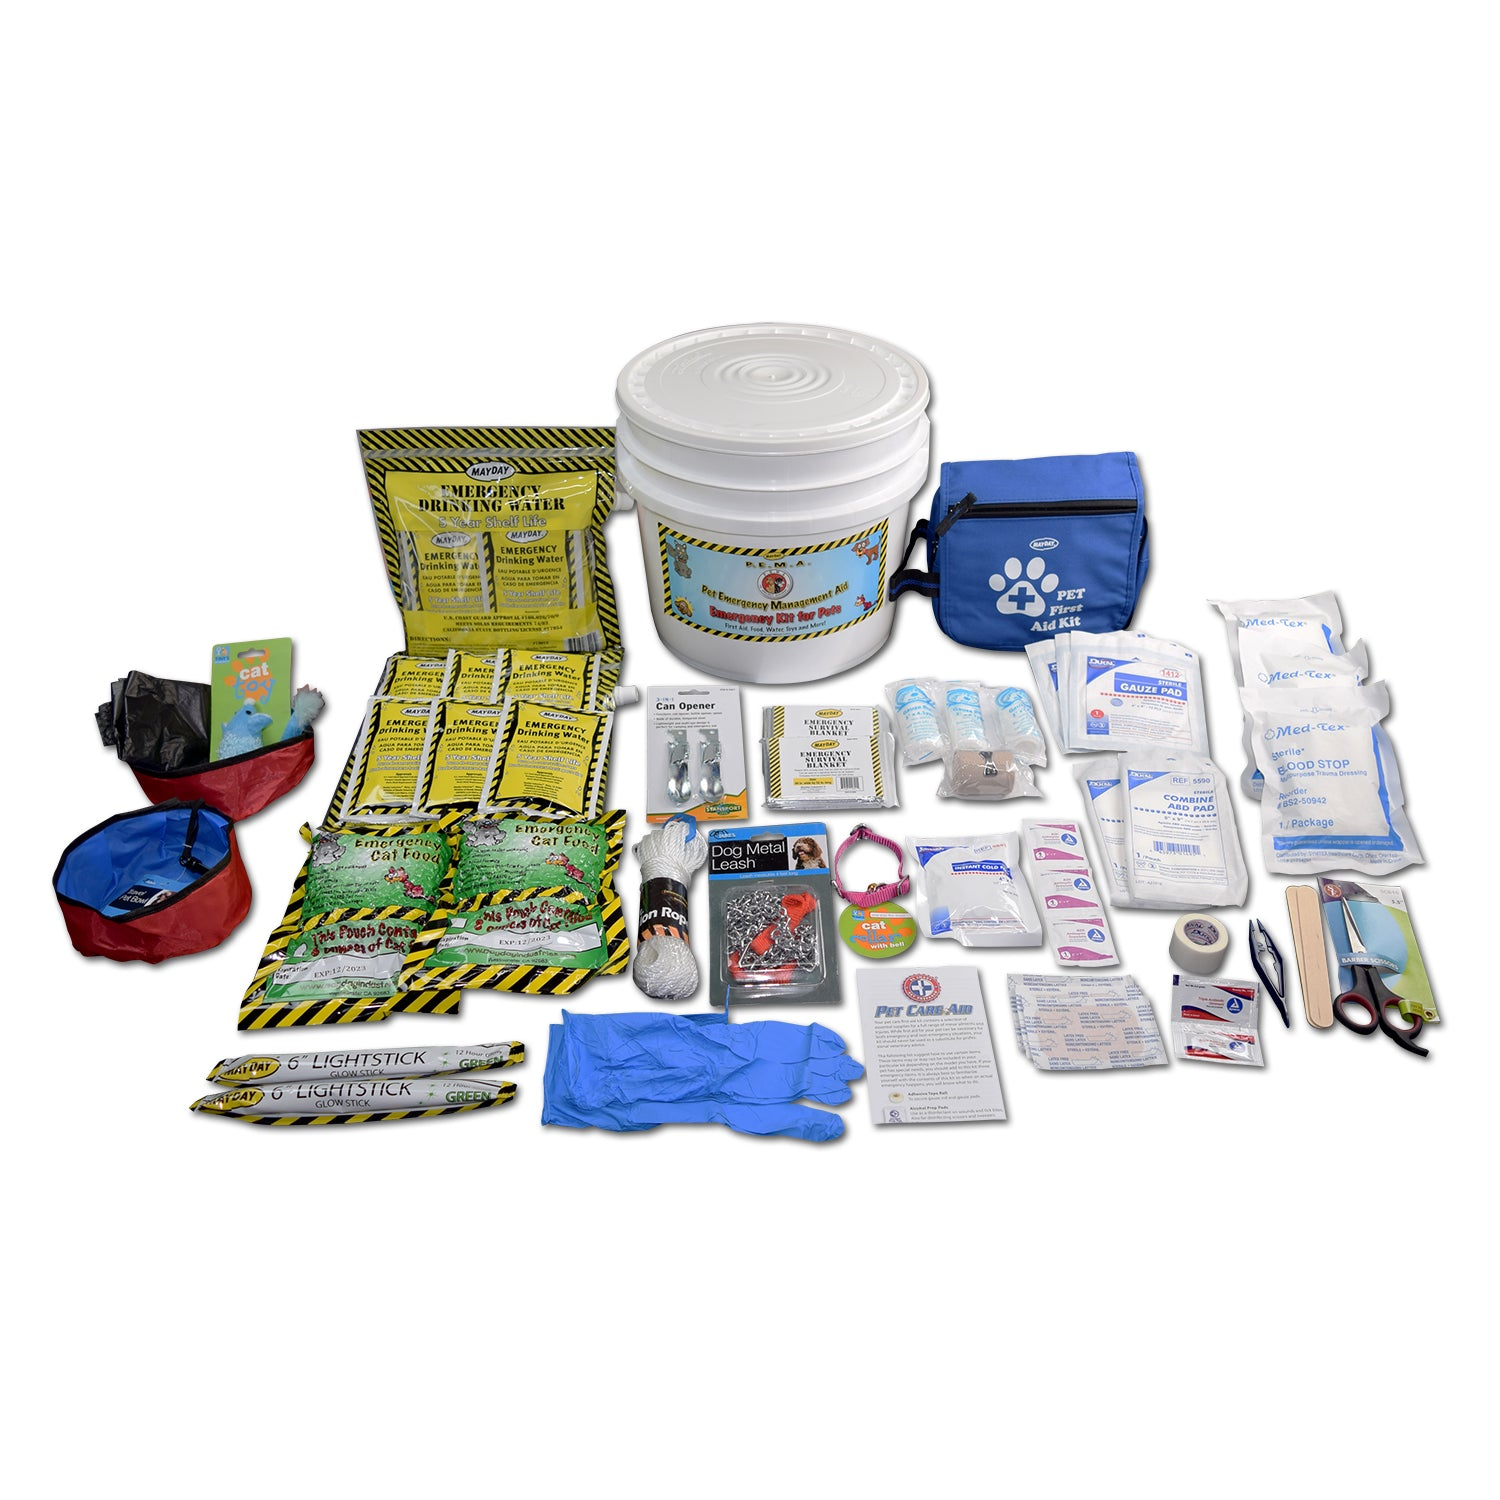 EMERGENCY CAT KIT WITH FIRST AID, FOOD, WATER, TOYS AND MORE 5 YEAR SHELF LIFE